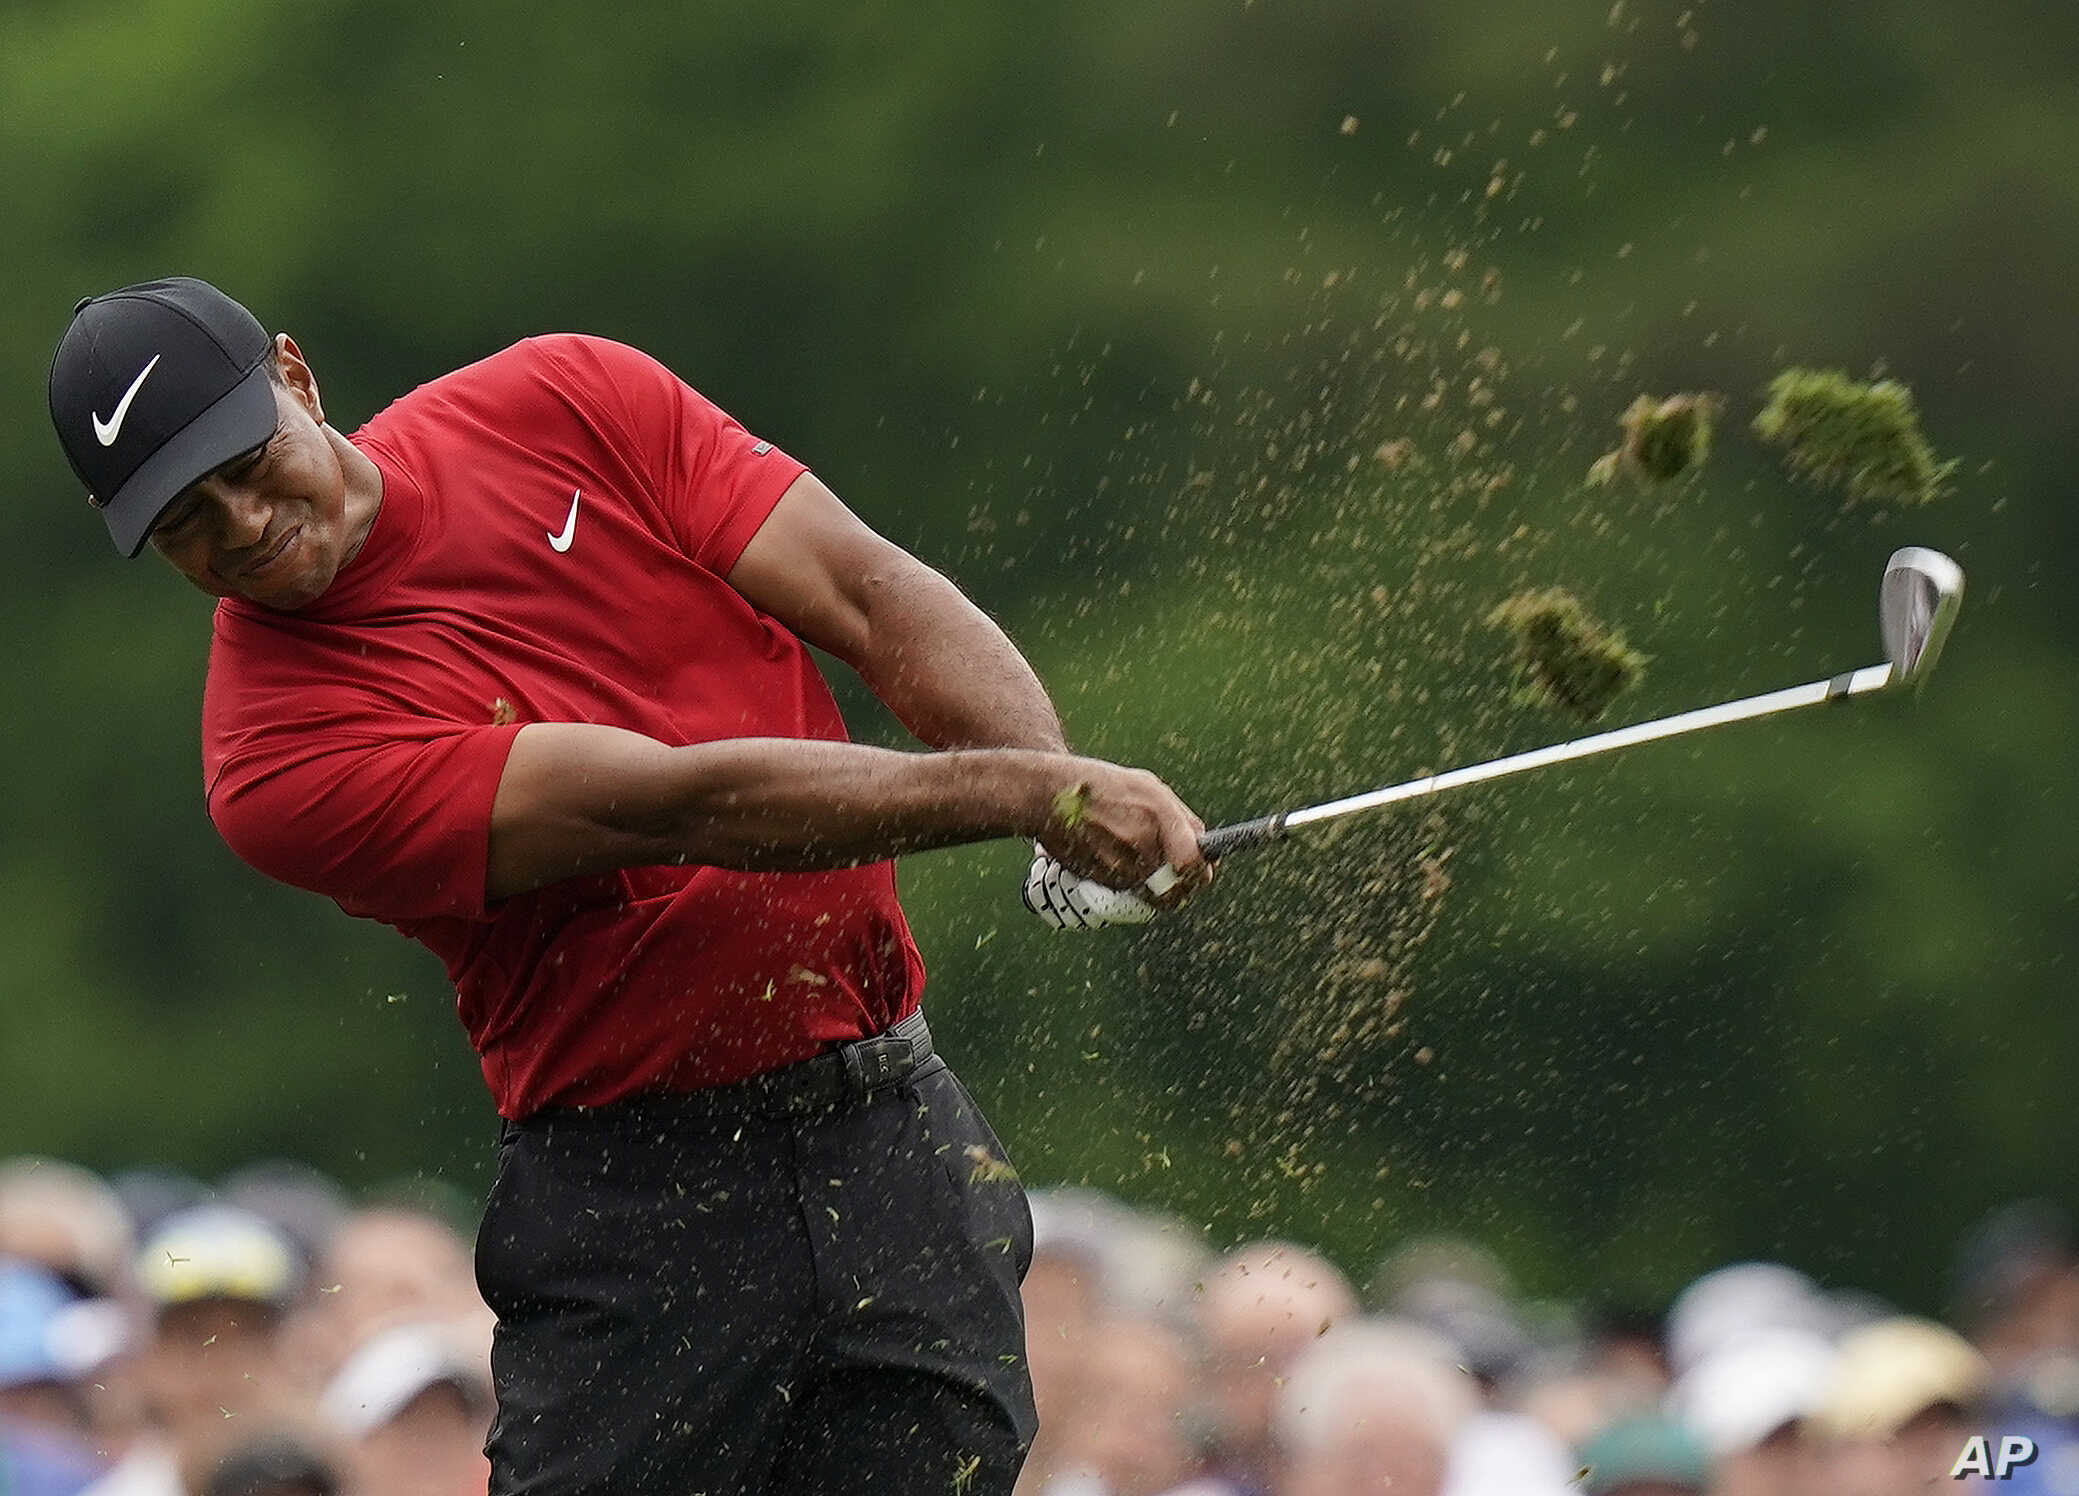 Tiger Woods Victory In Masters A Win For Golf Business Voice Of America English